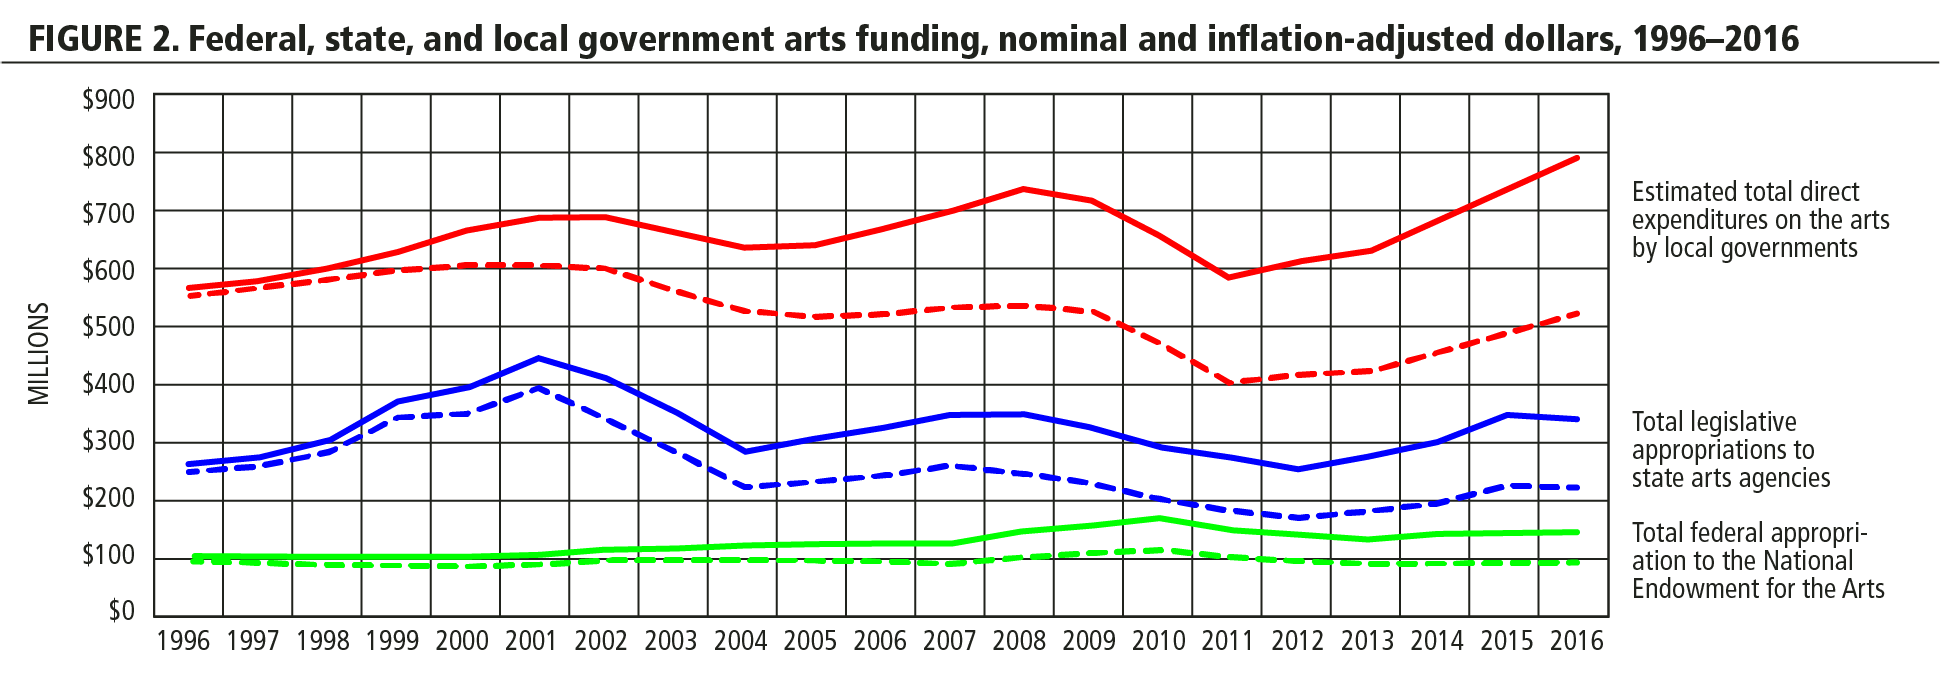 FIGURE 2. Federal, state, and local government arts funding, nominal and inflation-adjusted dollars 1996-2016